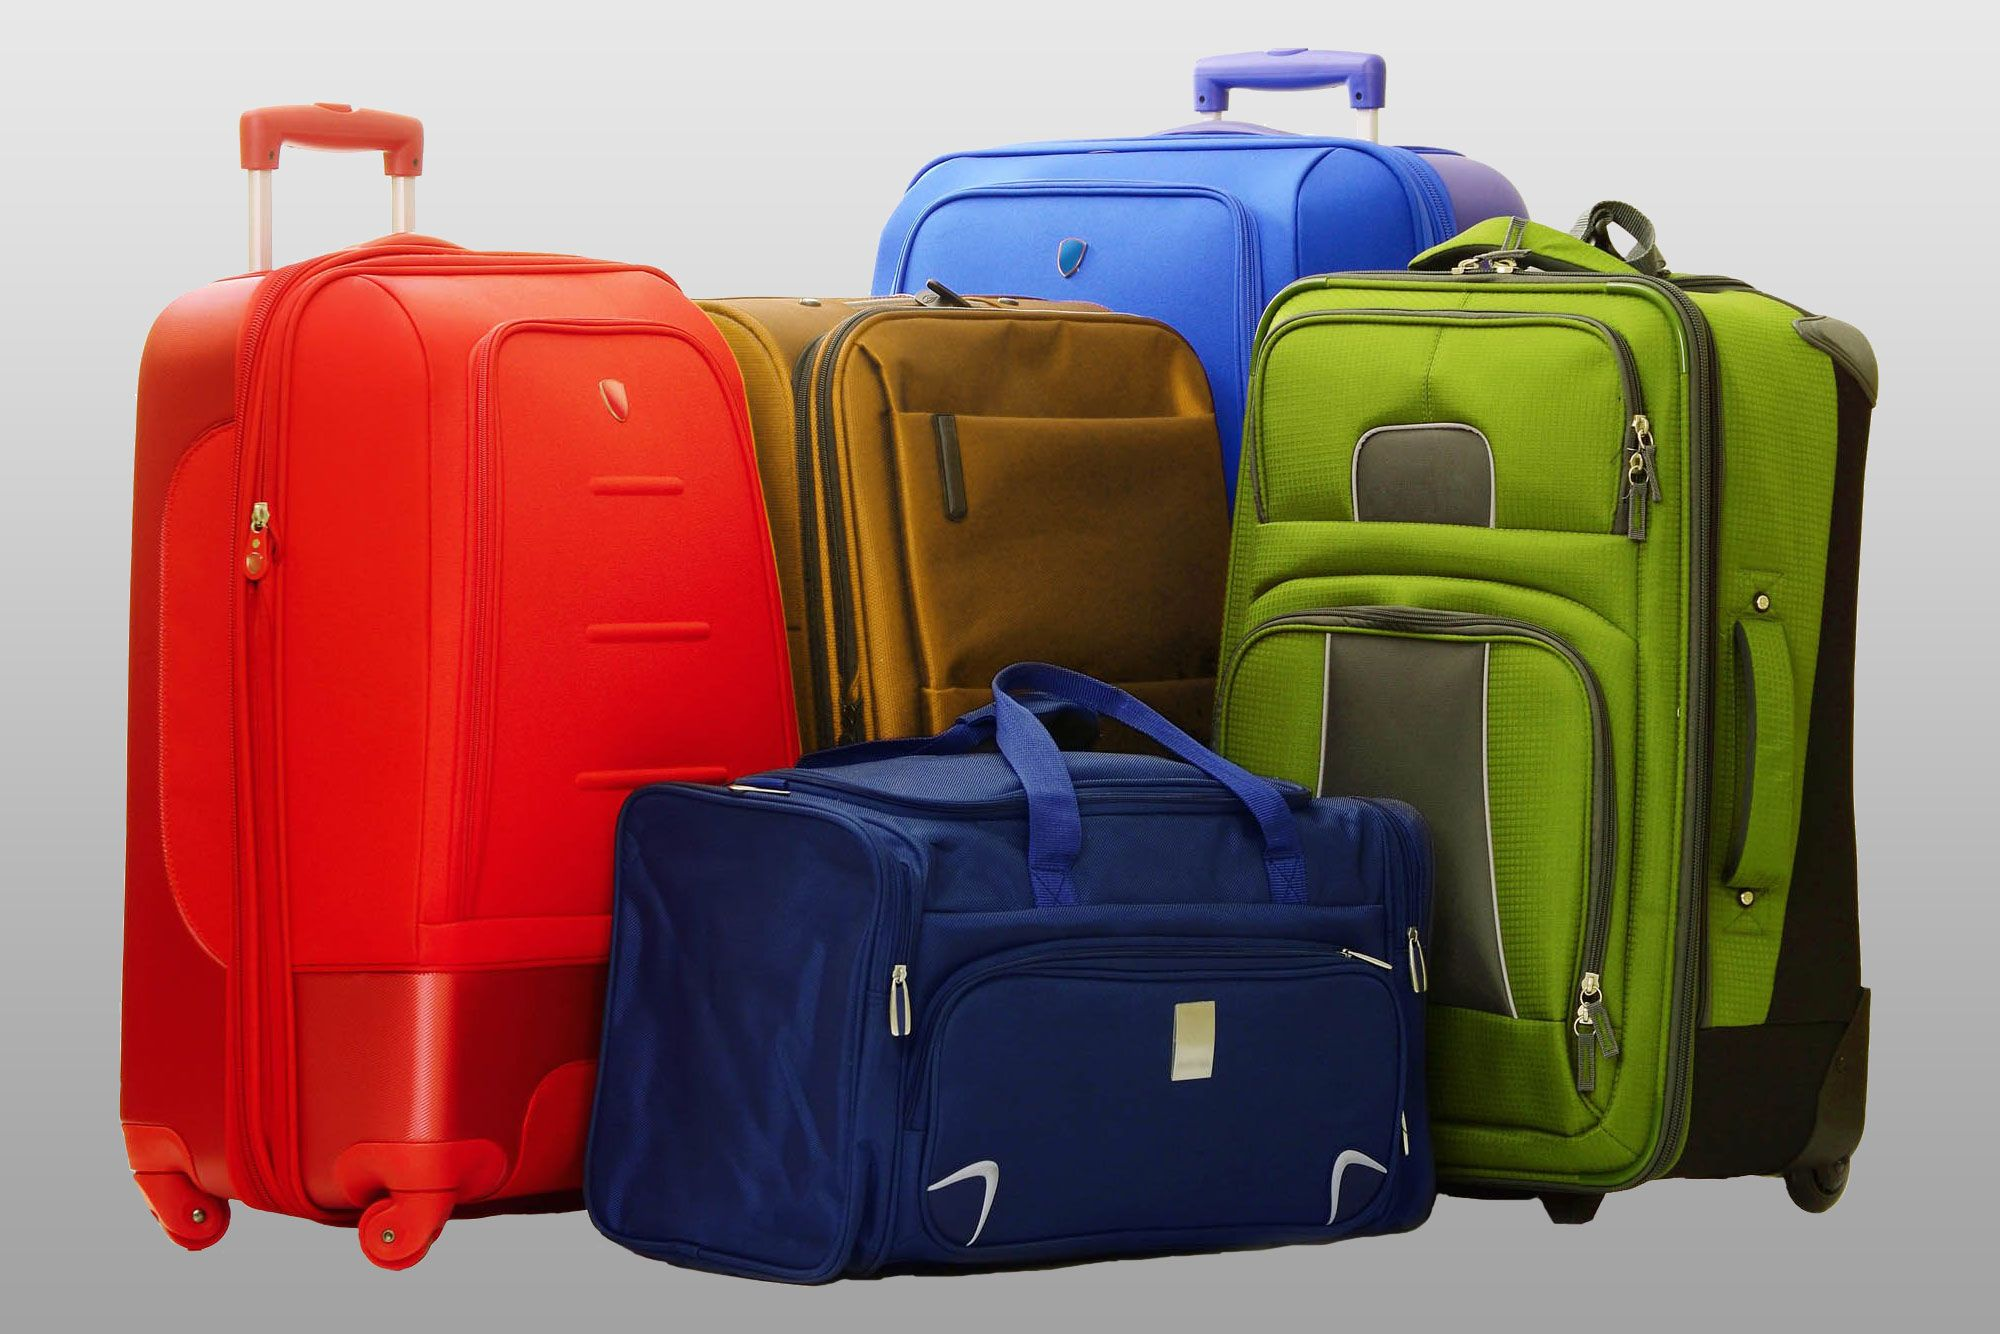 If you have excess baggage, don't worry. we offer cheapest